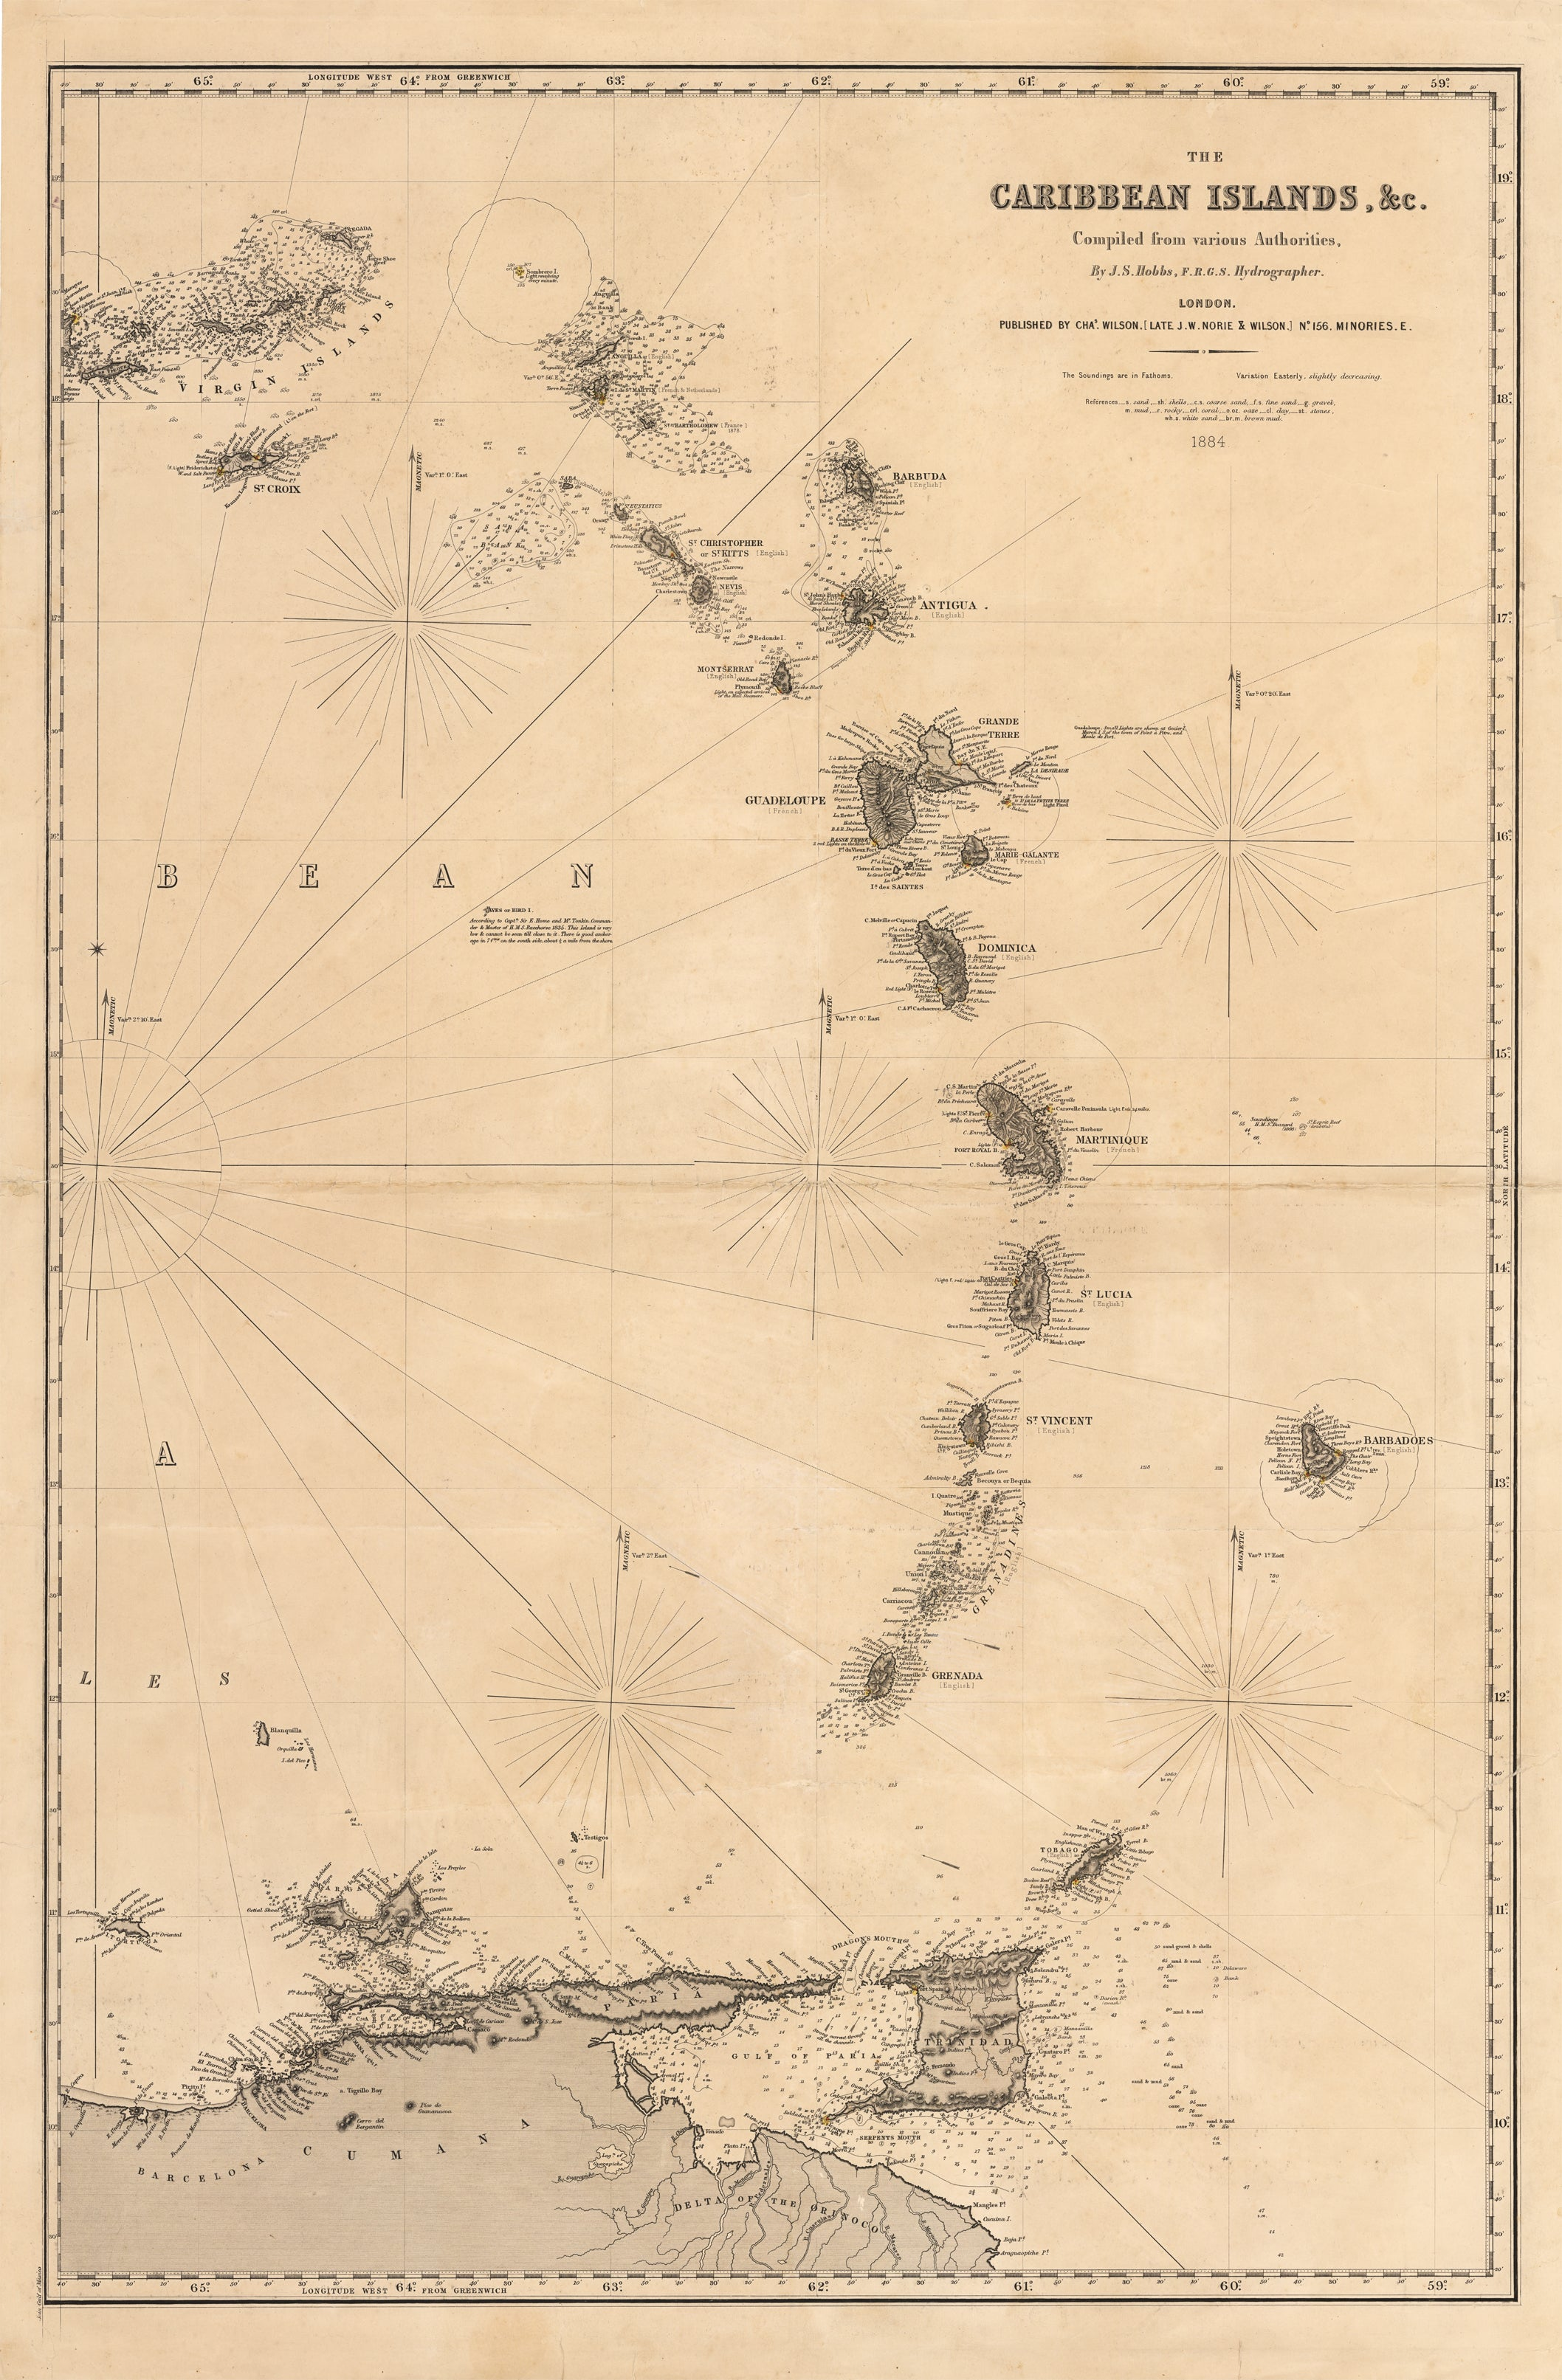 1884 The Caribbean Islands, & c. Zoomed Map Of The Caribbean Islands on map of haiti, map of bermuda, map of cuba, map of the northern hemisphere, map of the americas, map of the mediterranean, map of dominican republic, map of grenada, map of the world, map of the virgin islands, map of kenya, map of mexico, map of florida, map of belize, map of europe, map of panama, map of jamaica, map of the hawaii islands, map of puerto rico, map of the bahamas islands,